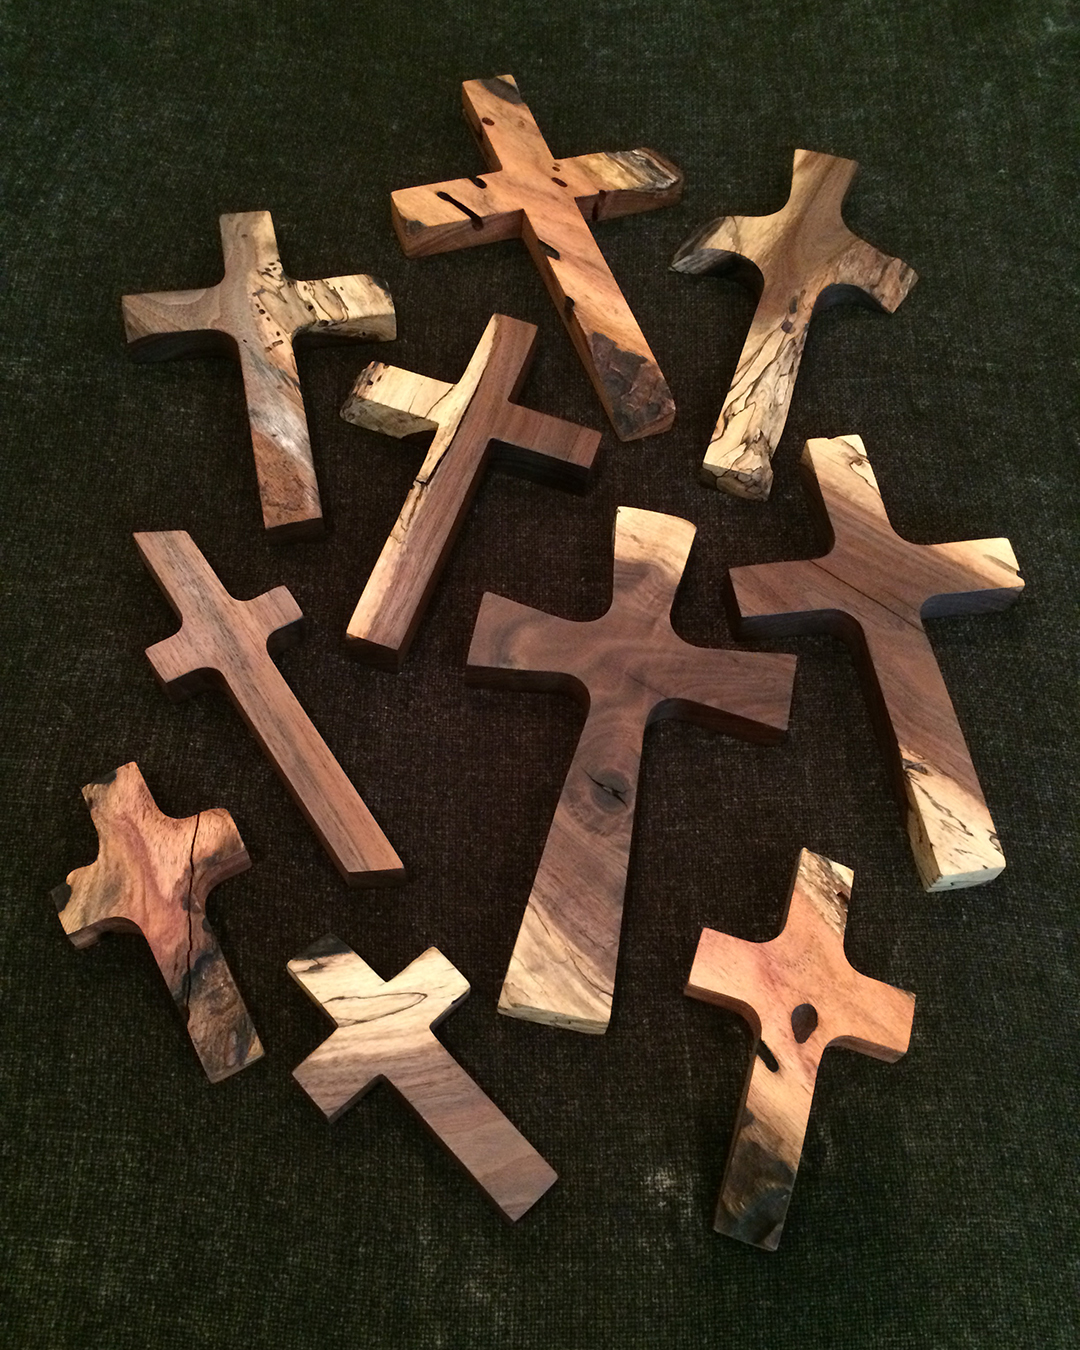 natural mesquite wood crosses of various sizes